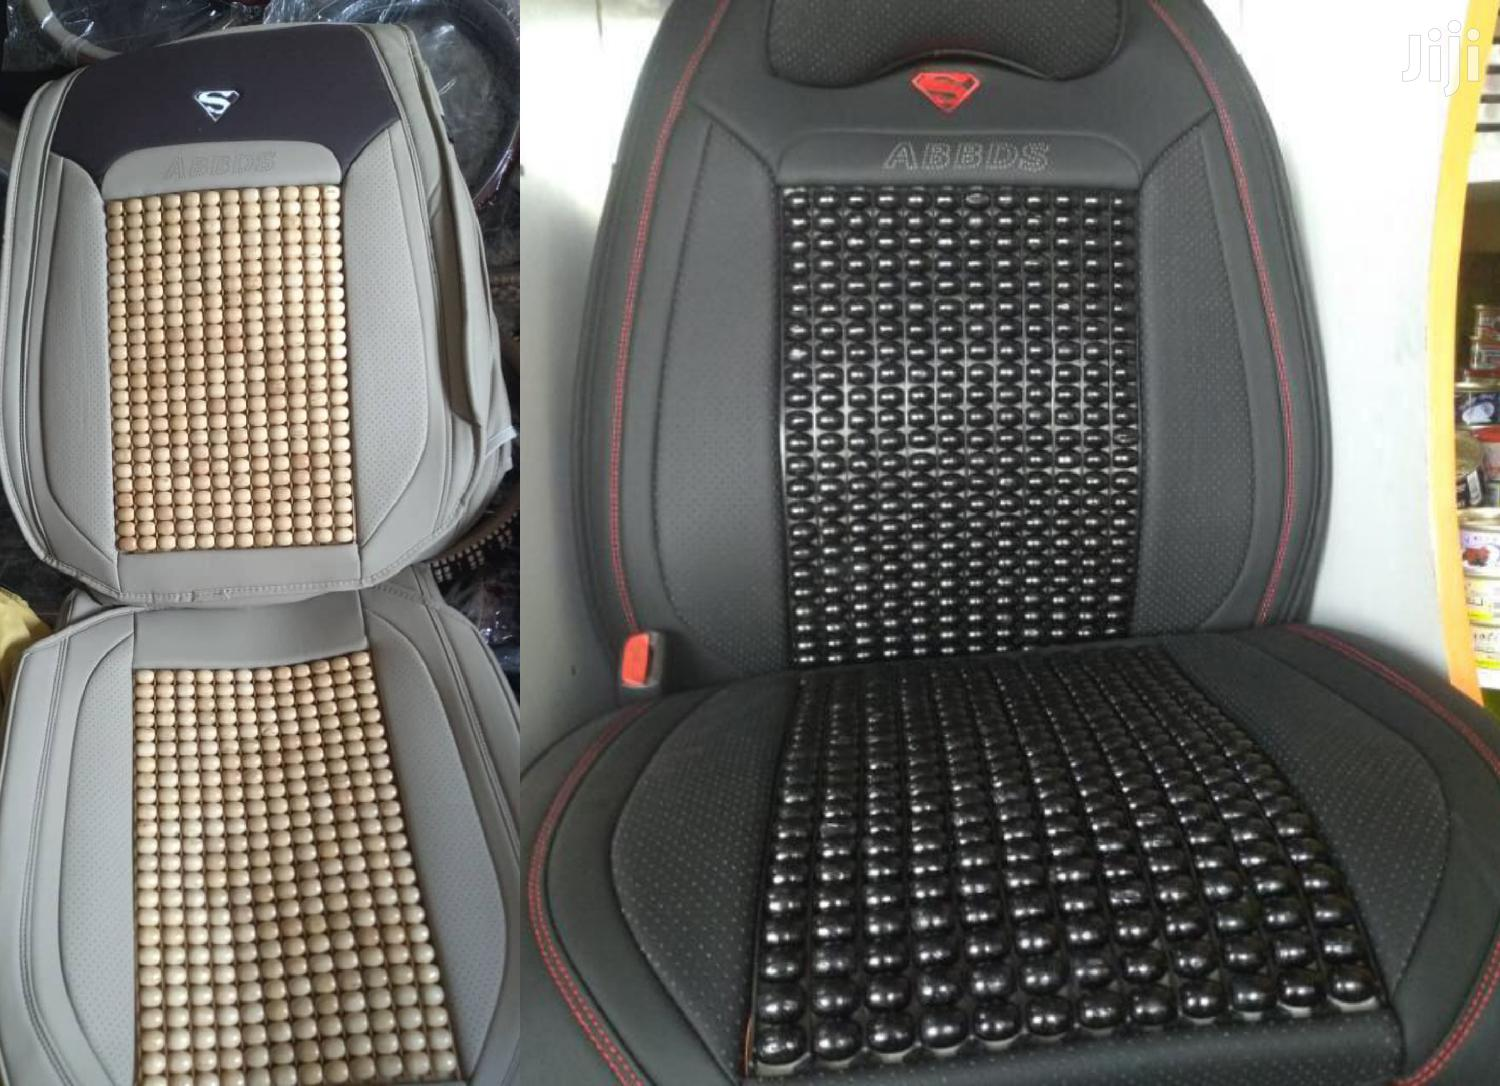 Pure Leather Vip Seat Cover .Original Material Not.Copies | Vehicle Parts & Accessories for sale in Kampala, Central Region, Uganda